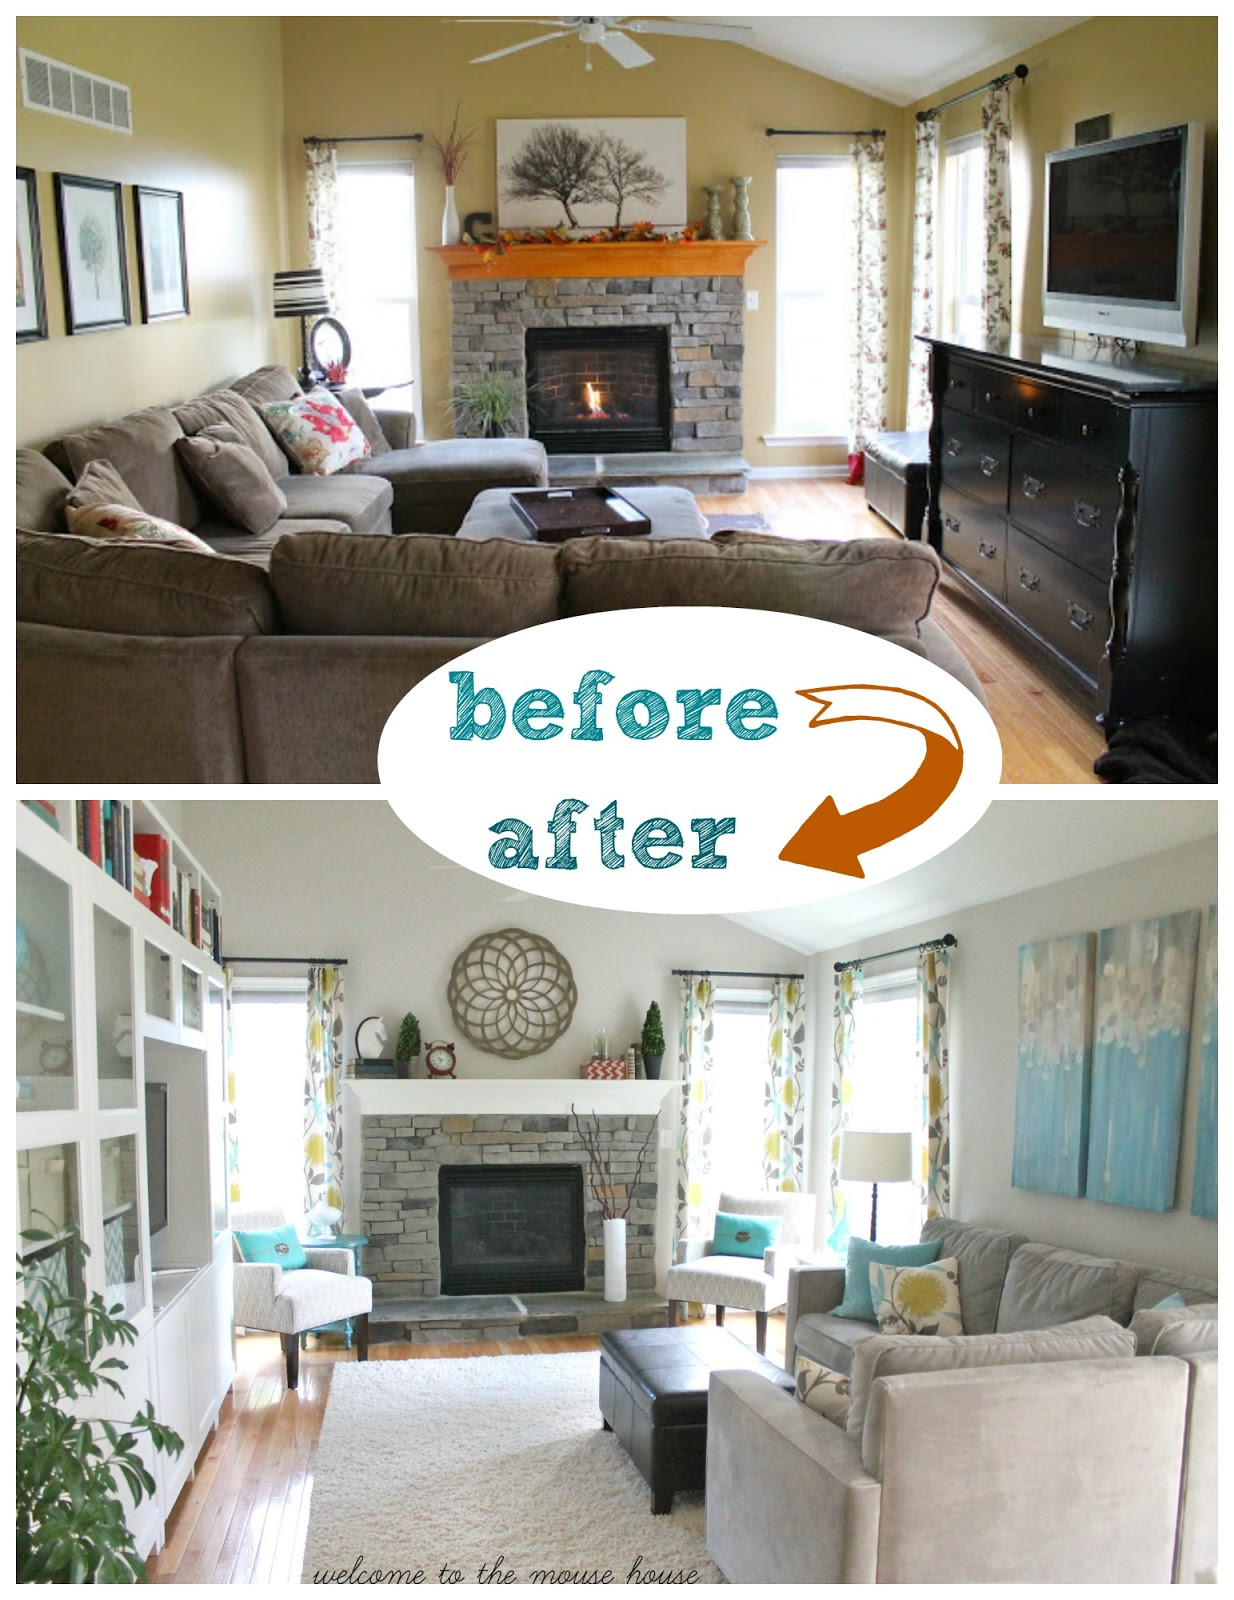 The New Family Room Reveal - Family room seating